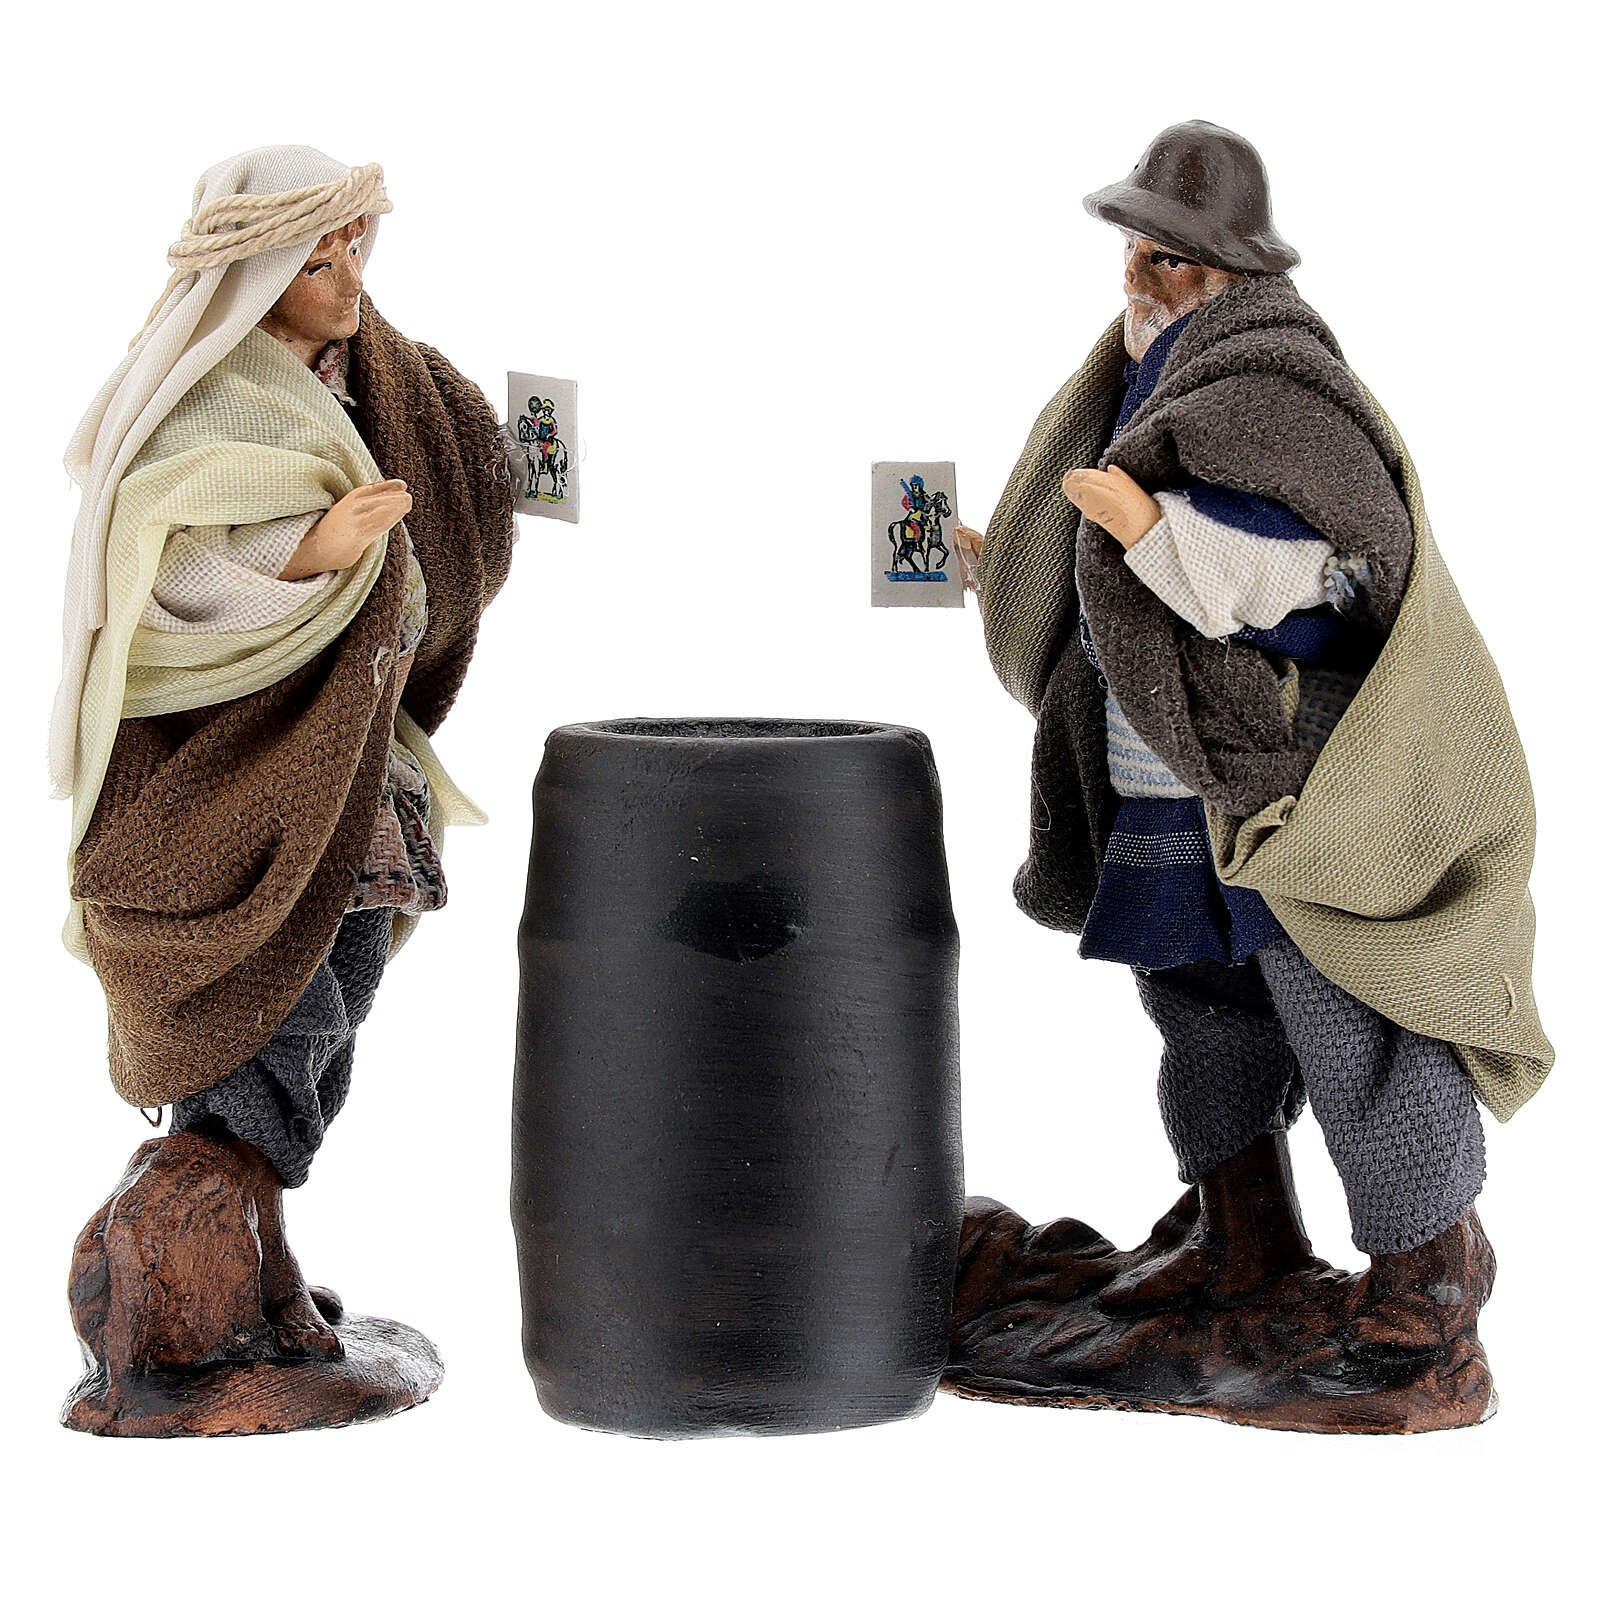 Men playing cards with barrel, Neapolitan nativity terracotta 8 cm 4